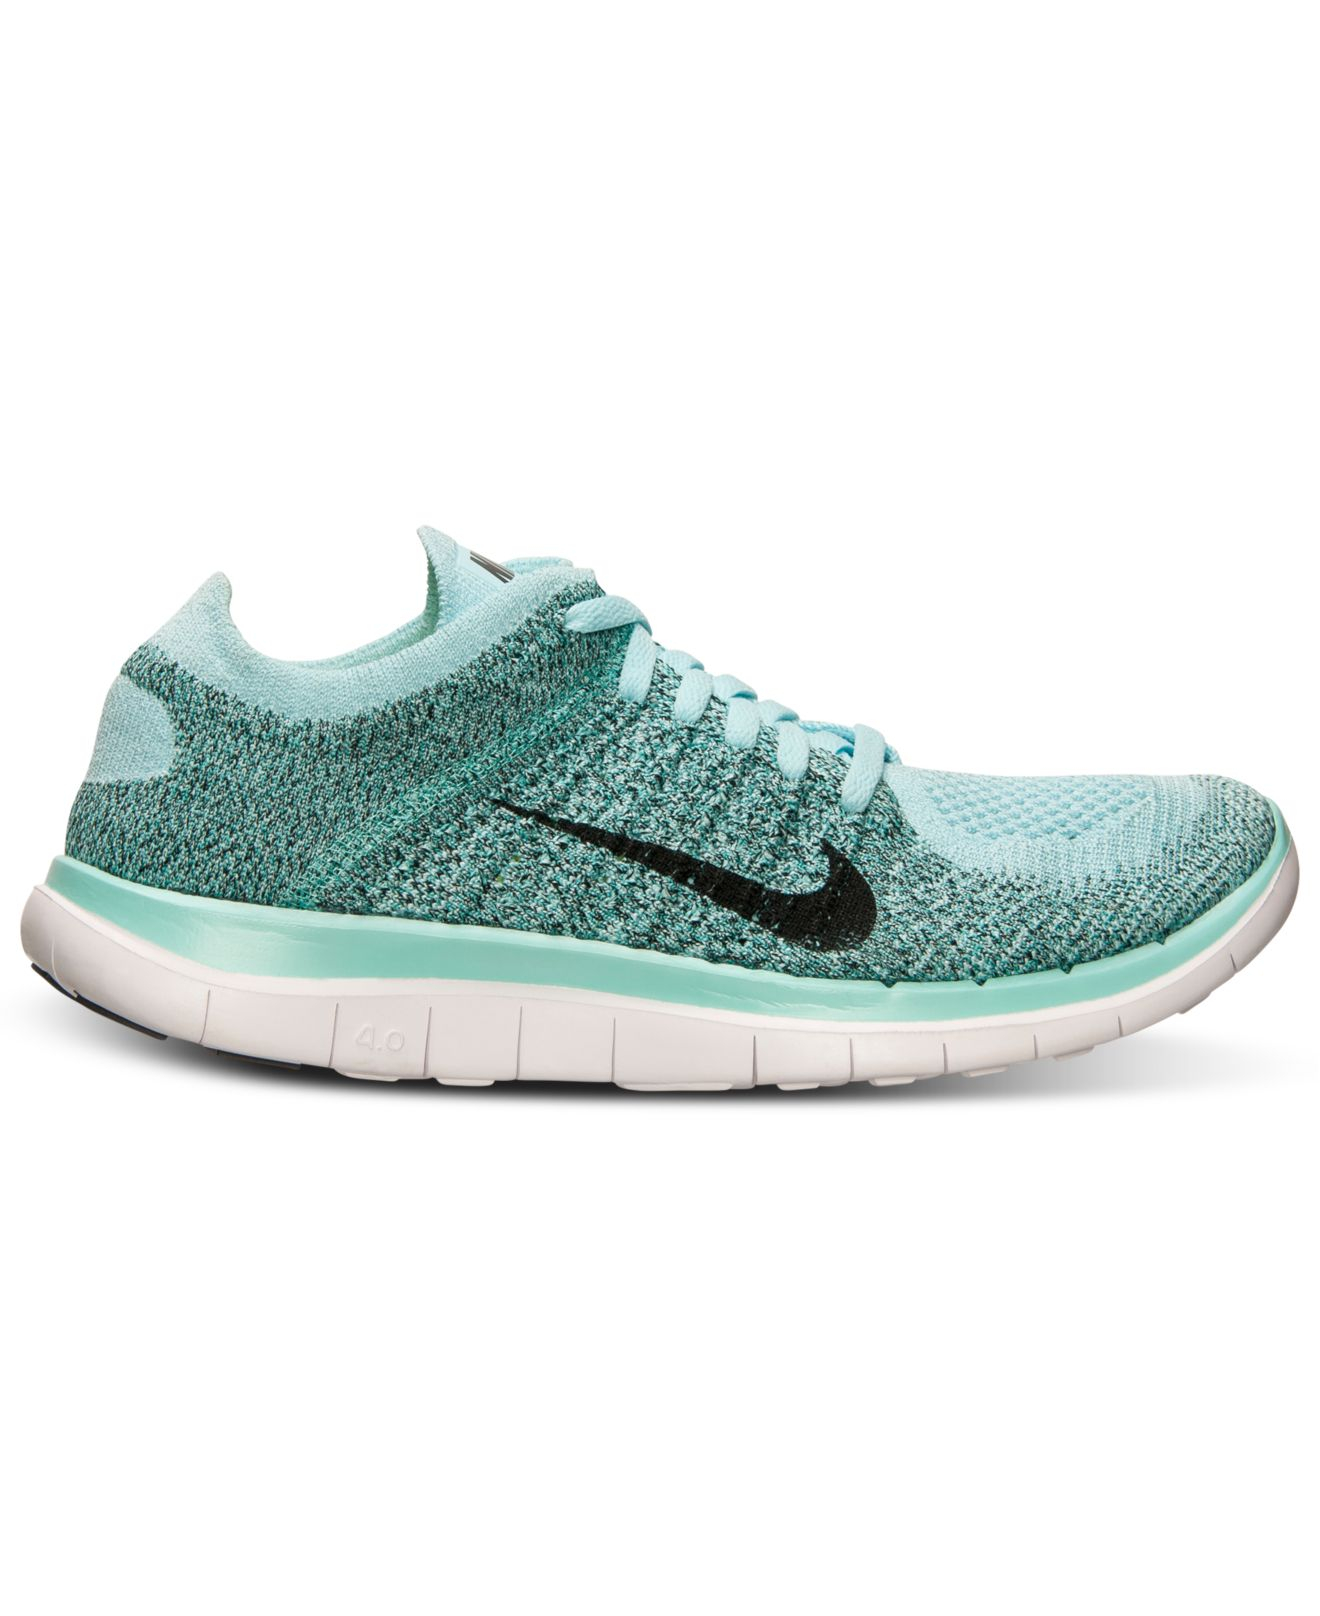 nike women 39 s free flyknit 4 0 running sneakers from finish line in blue lyst. Black Bedroom Furniture Sets. Home Design Ideas